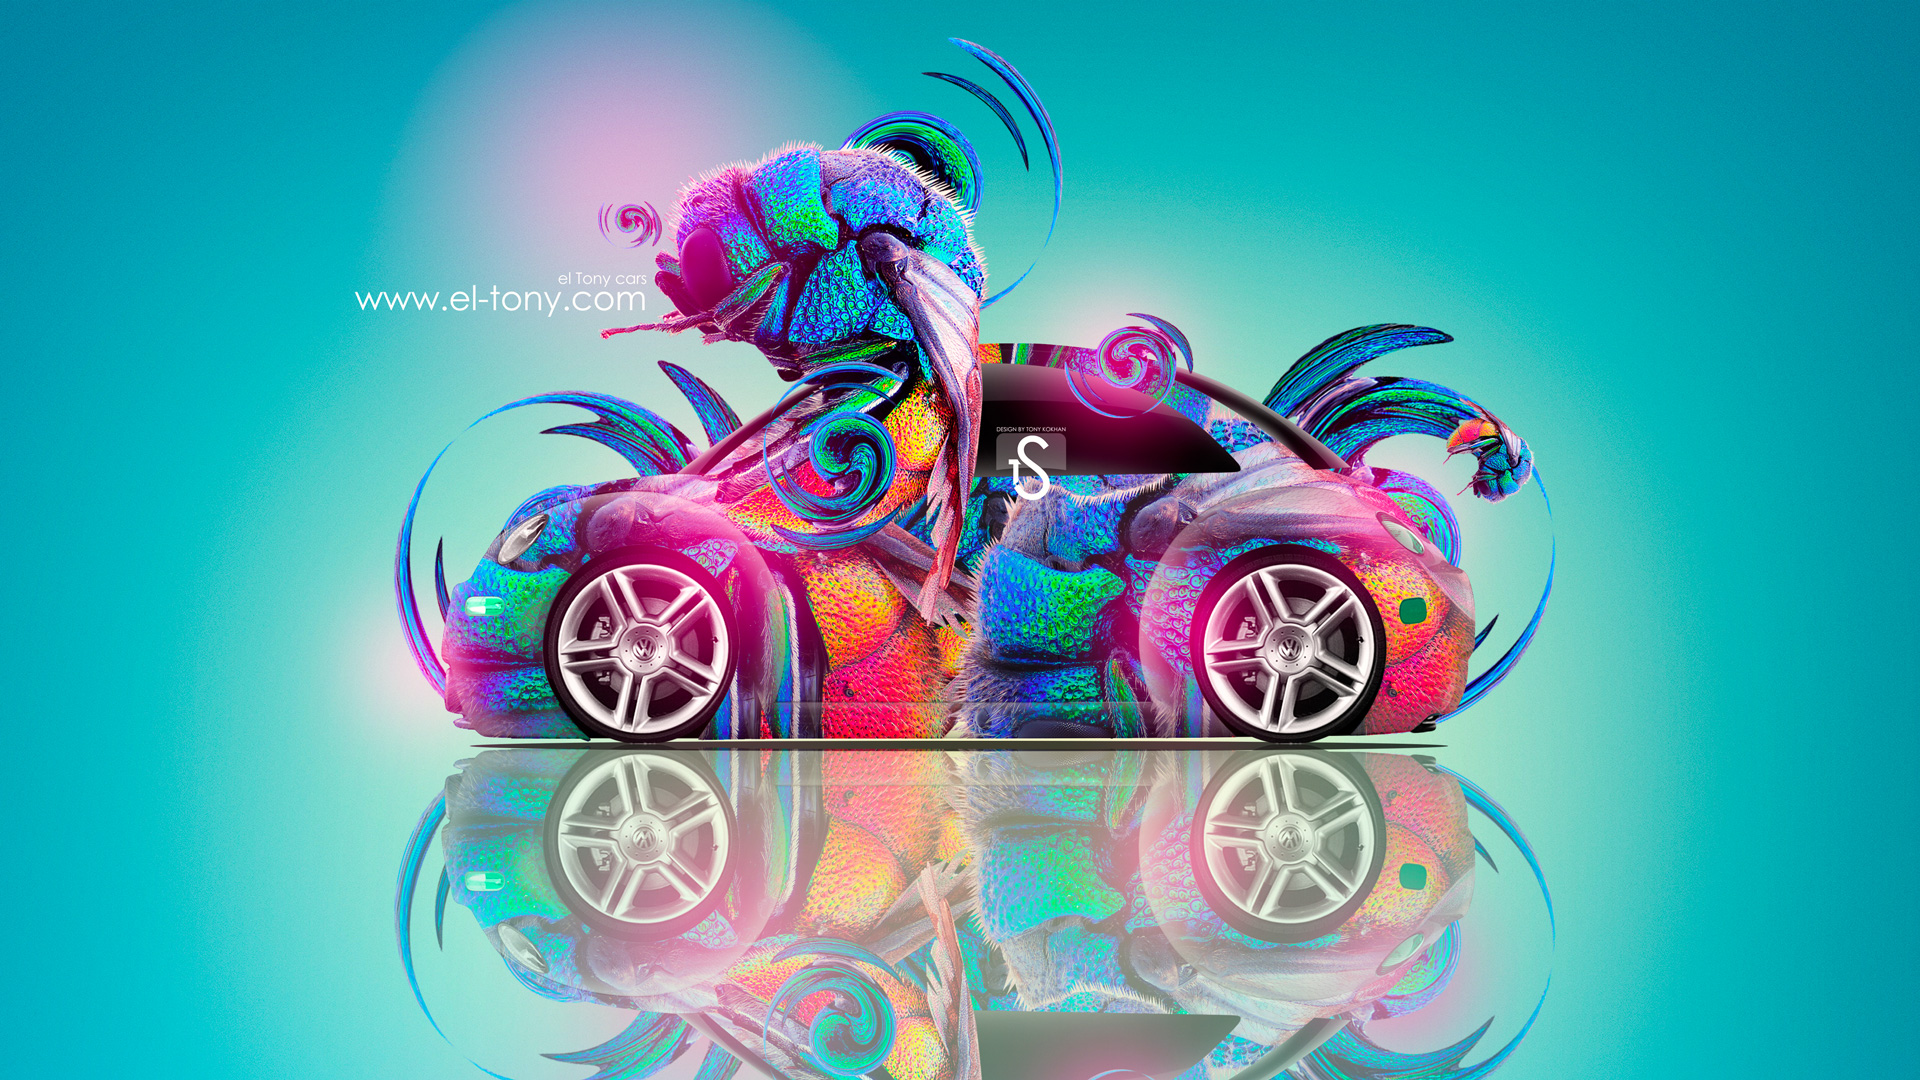 Volkswagen-Beetle-Fantasy-Car-2013-HD-Wallpapers-design-by-Tony-Kokhan-[www.el-tony.com]